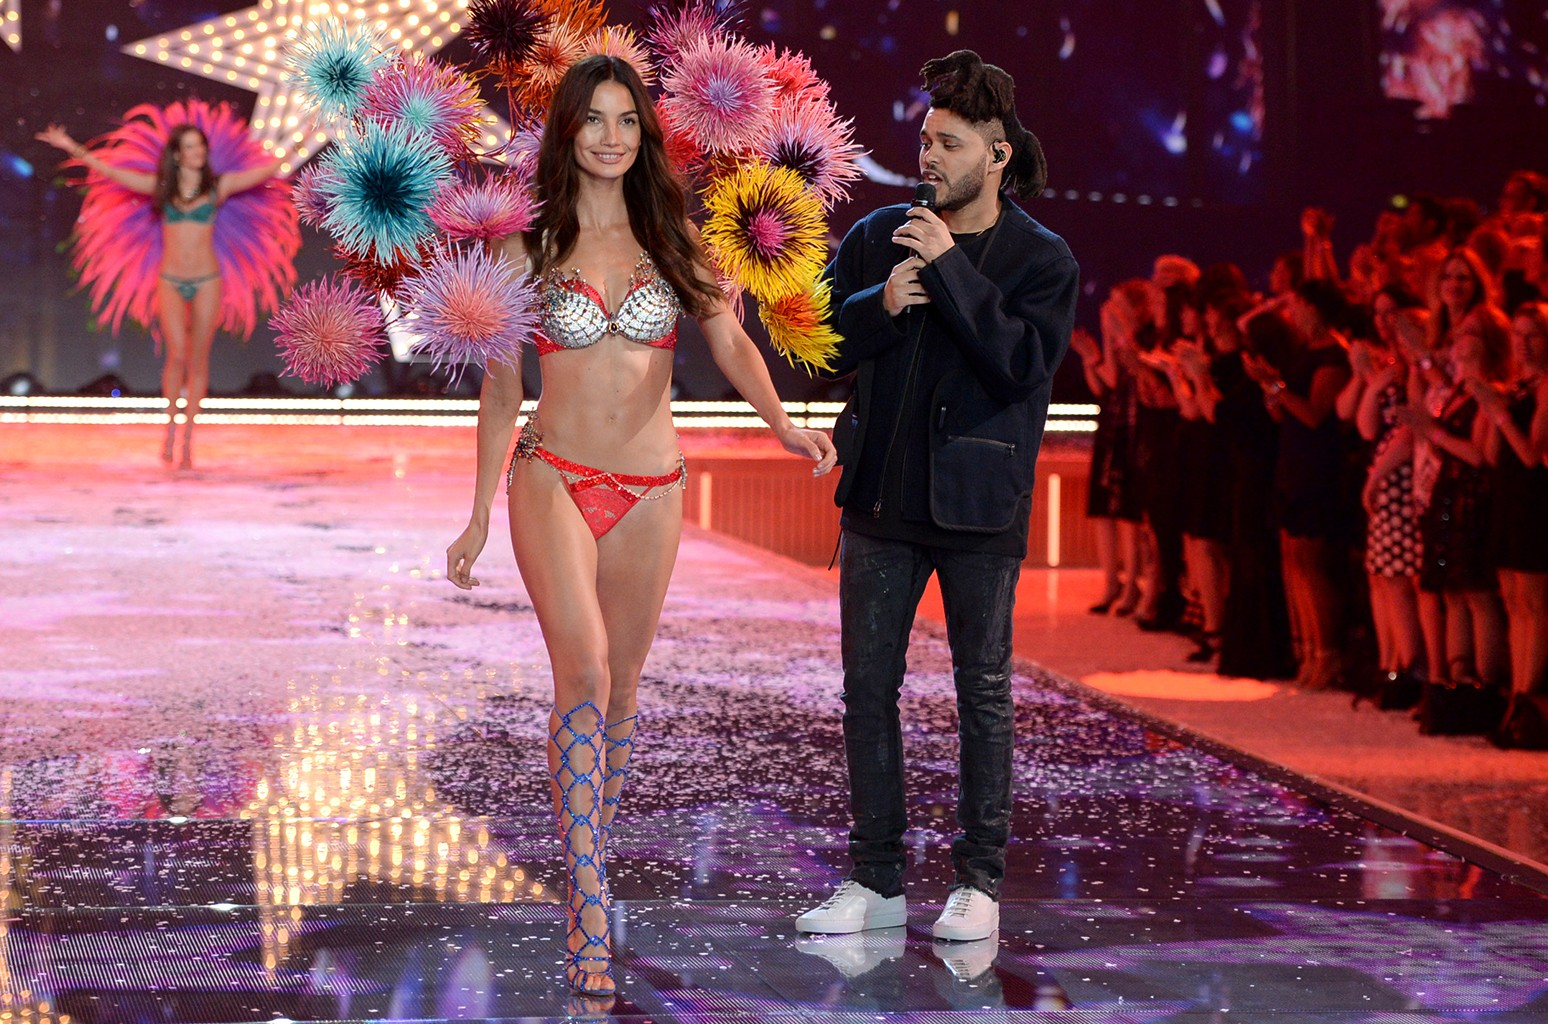 The Weeknd performs during the Victoria's Secret Fashion Show